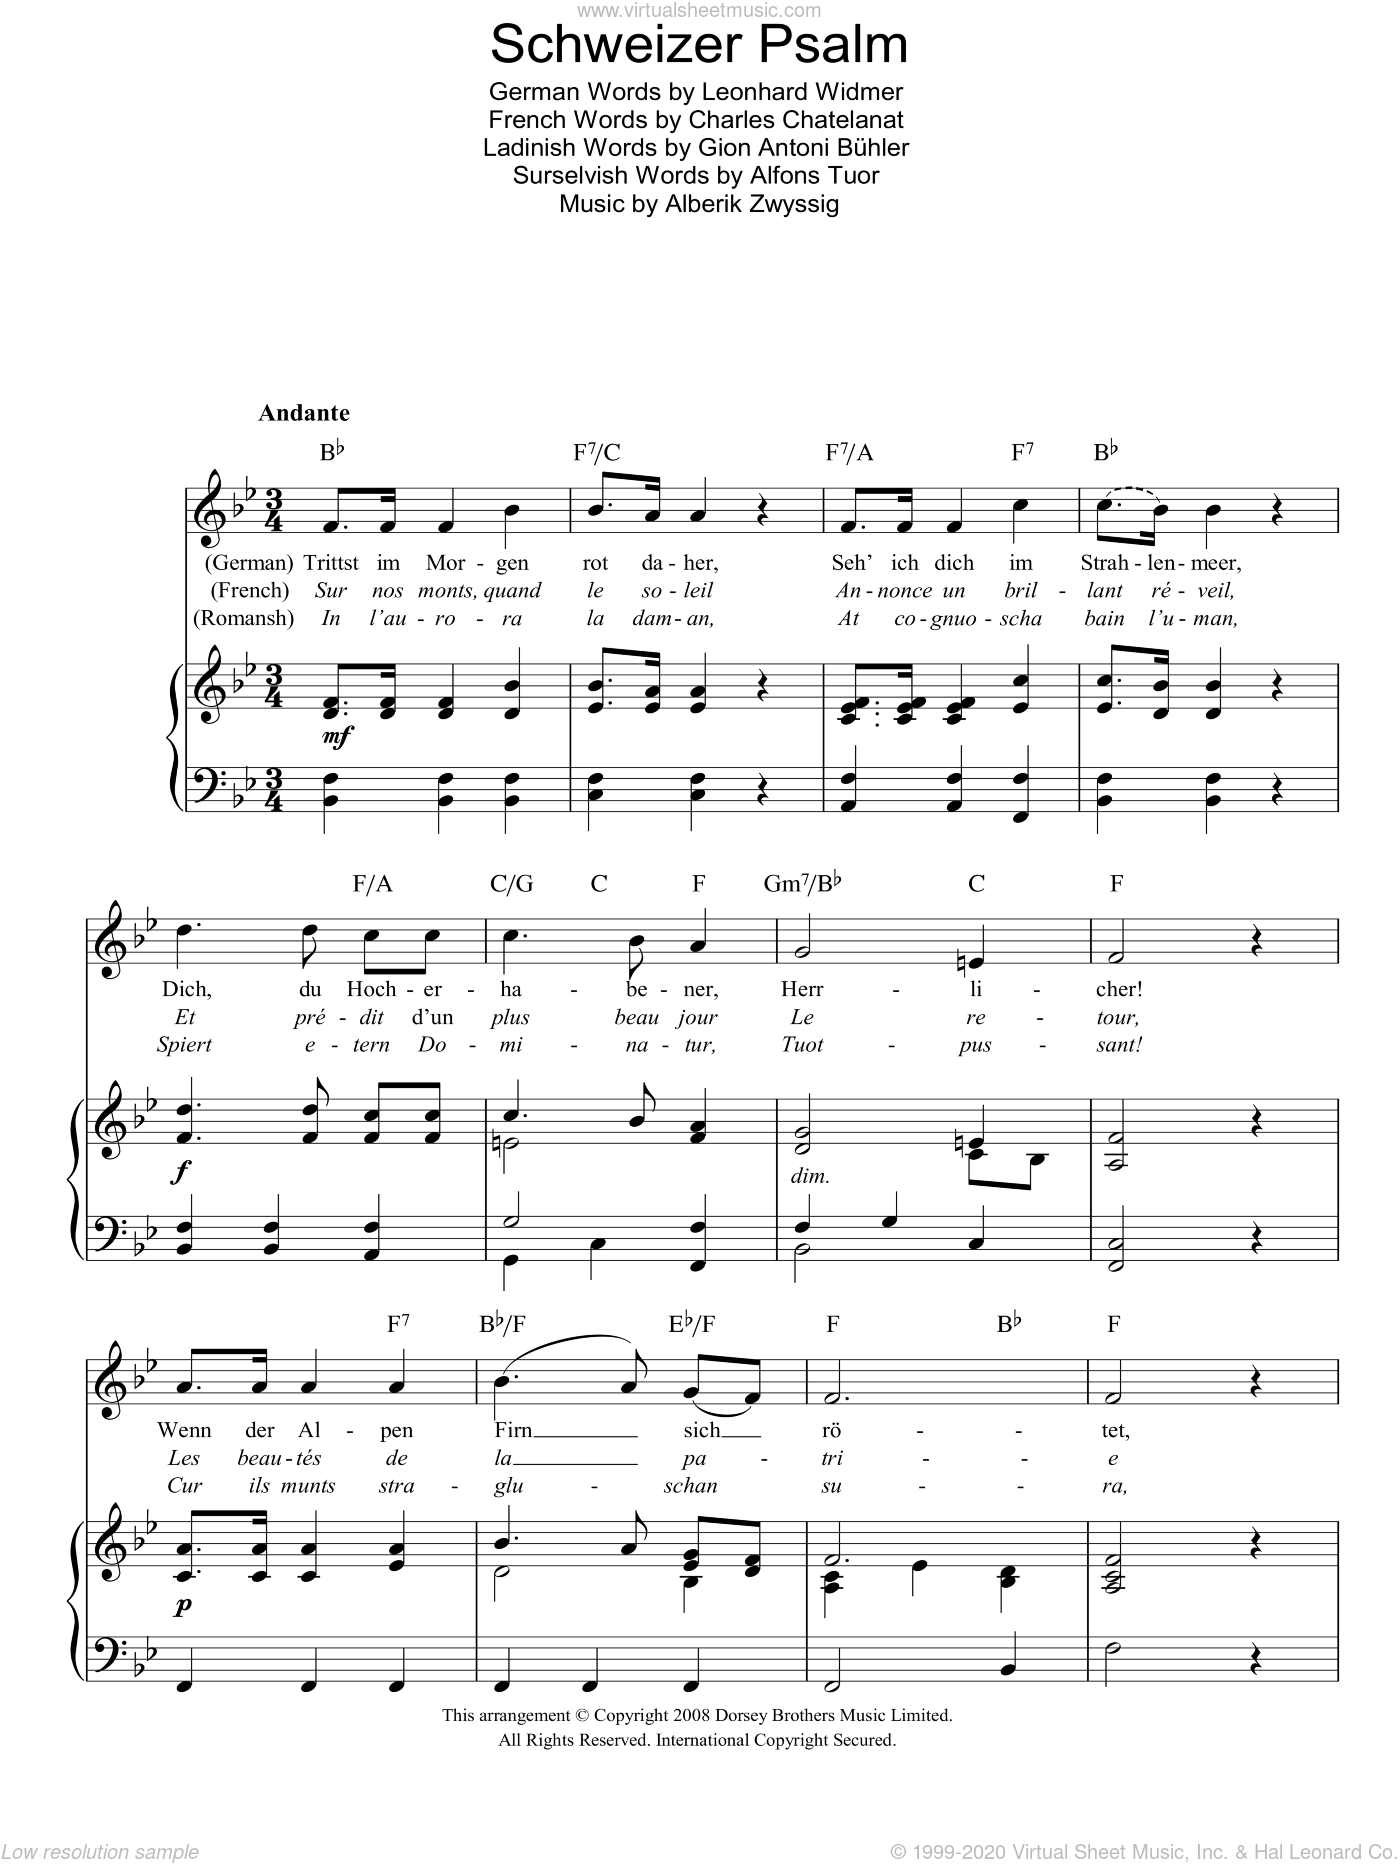 Schweizer Psalm (Swiss National Anthem) sheet music for voice, piano or guitar by Leonhard Widmer. Score Image Preview.